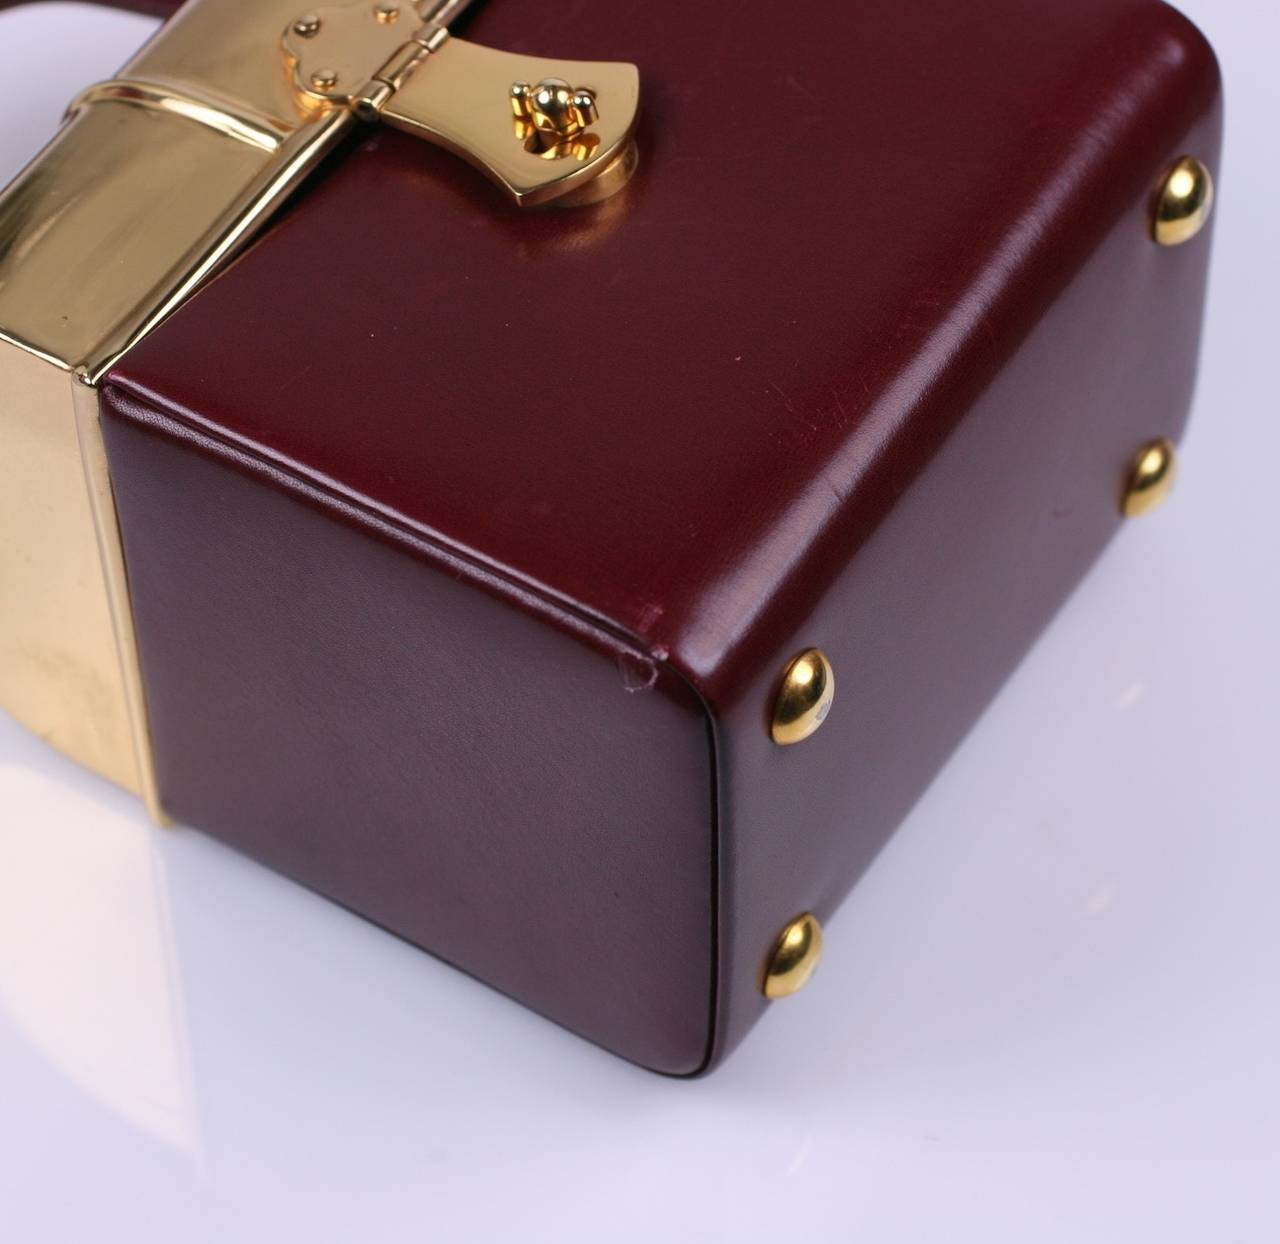 Sacha Miniature Burgundy Box Bag In Excellent Condition For Riverdale Ny